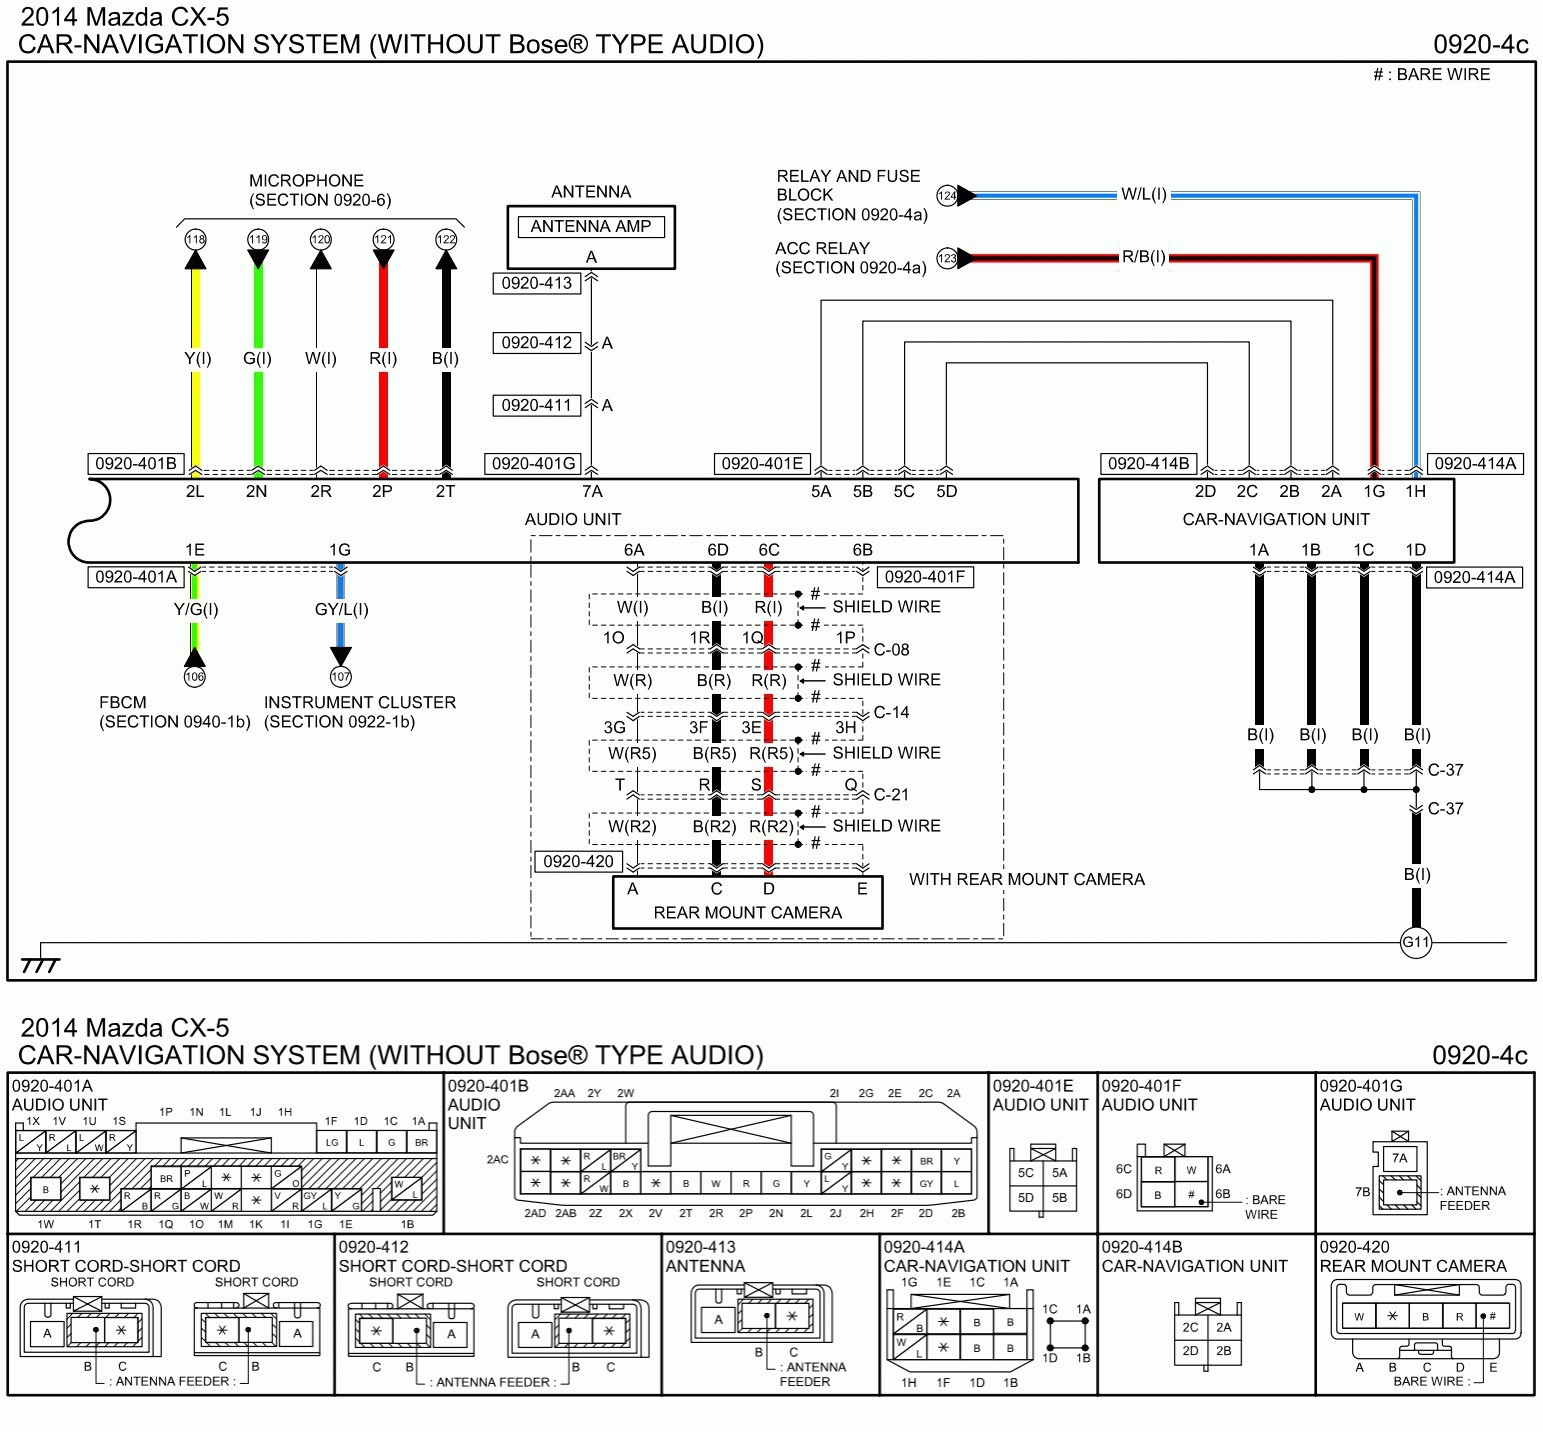 alpine head unit power pack ktp 445u wiring diagram Download-alpine ktp 445a wiring diagram alpine ktp 445 wiring diagram elegant alpine ktp 445u and 7-m